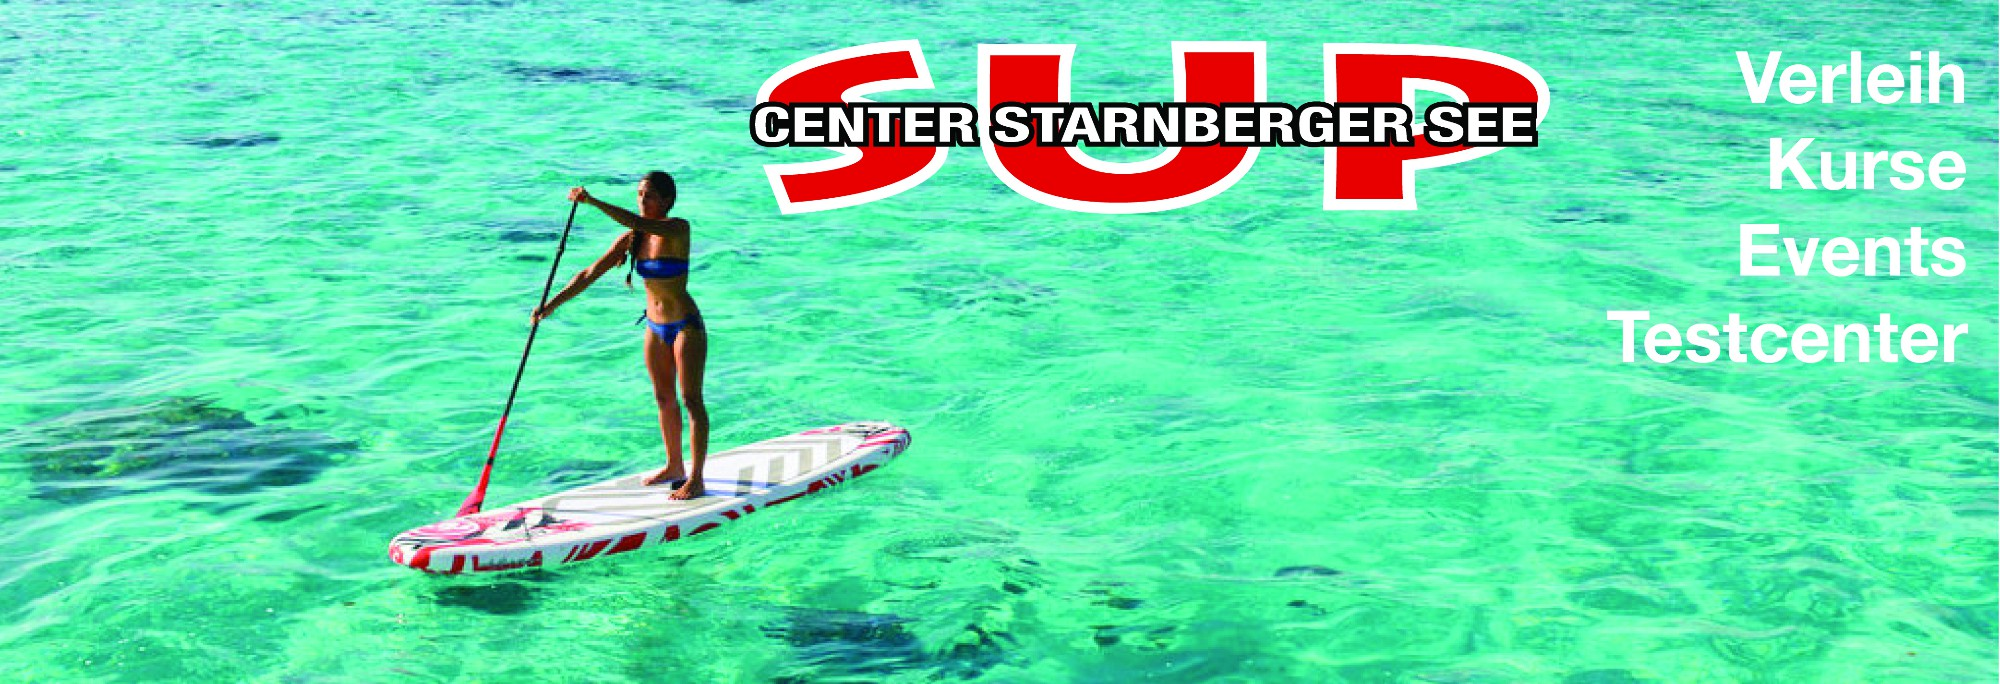 Sup Center Starnberger See